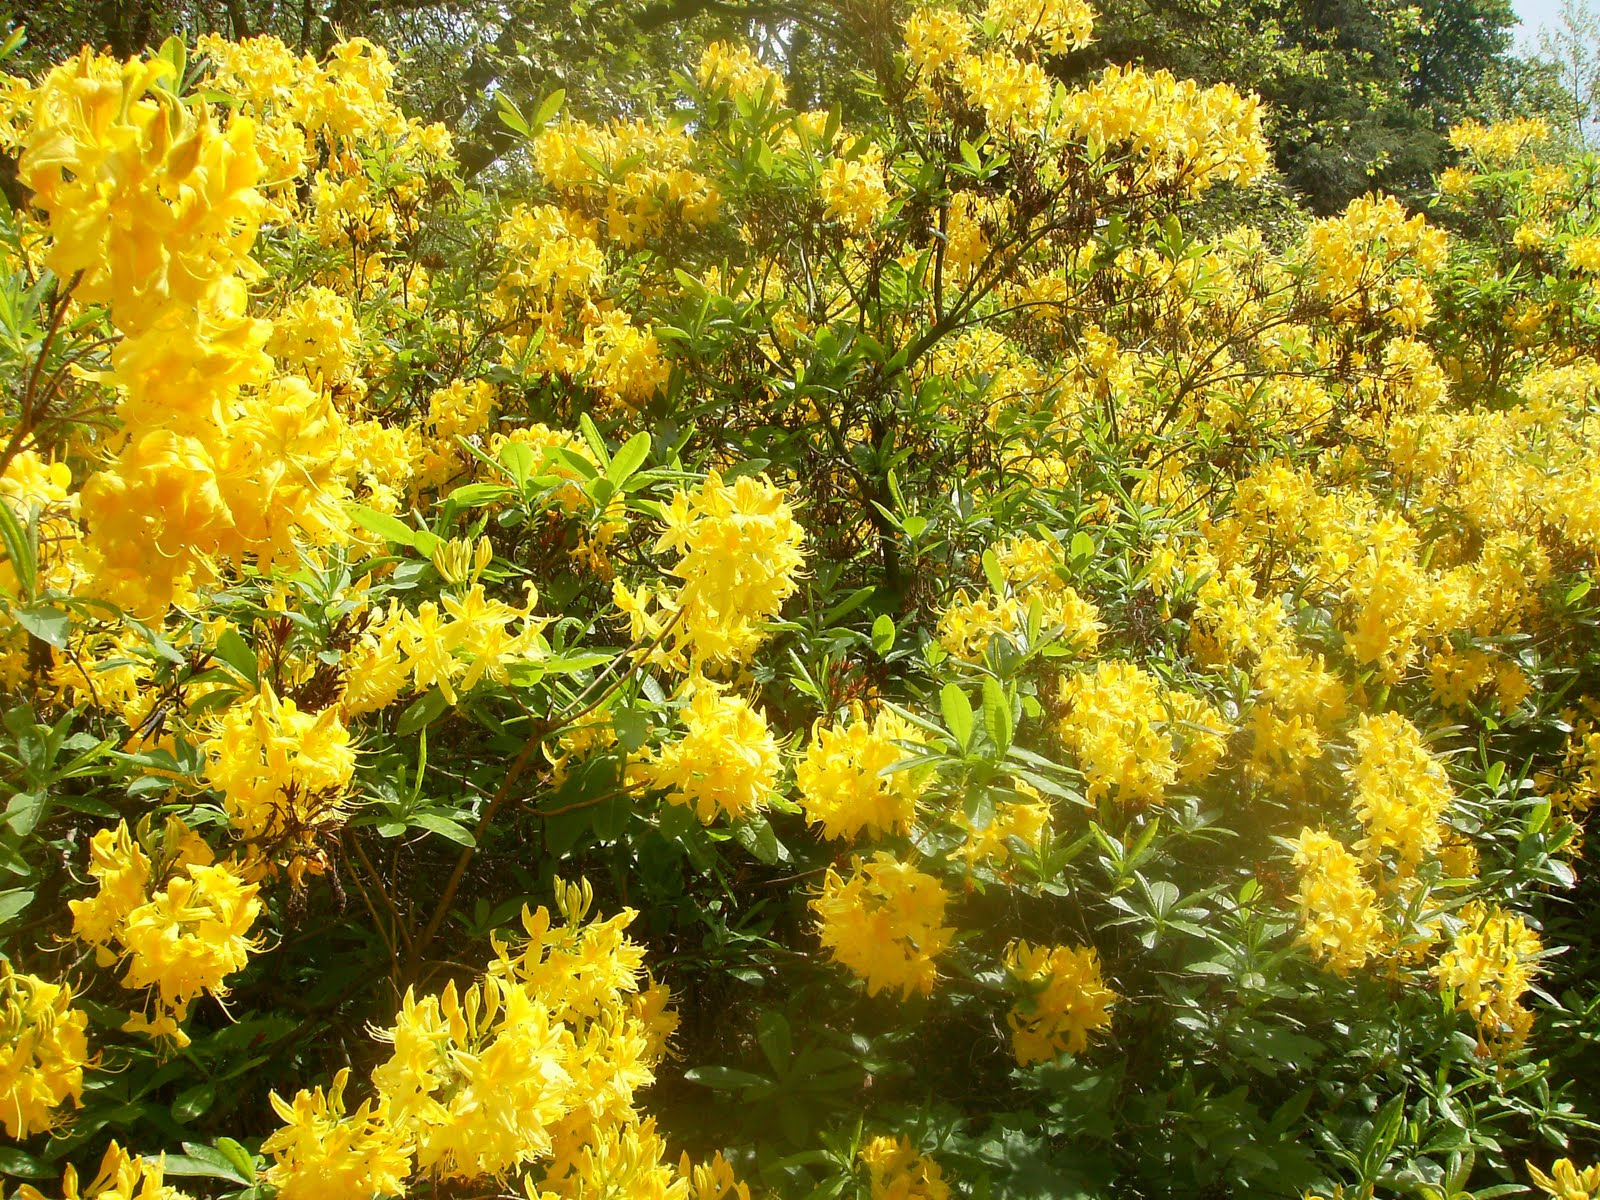 Yellow flowers bushes 14 free wallpaper hdflowerwallpaper yellow flowers bushes free wallpaper mightylinksfo